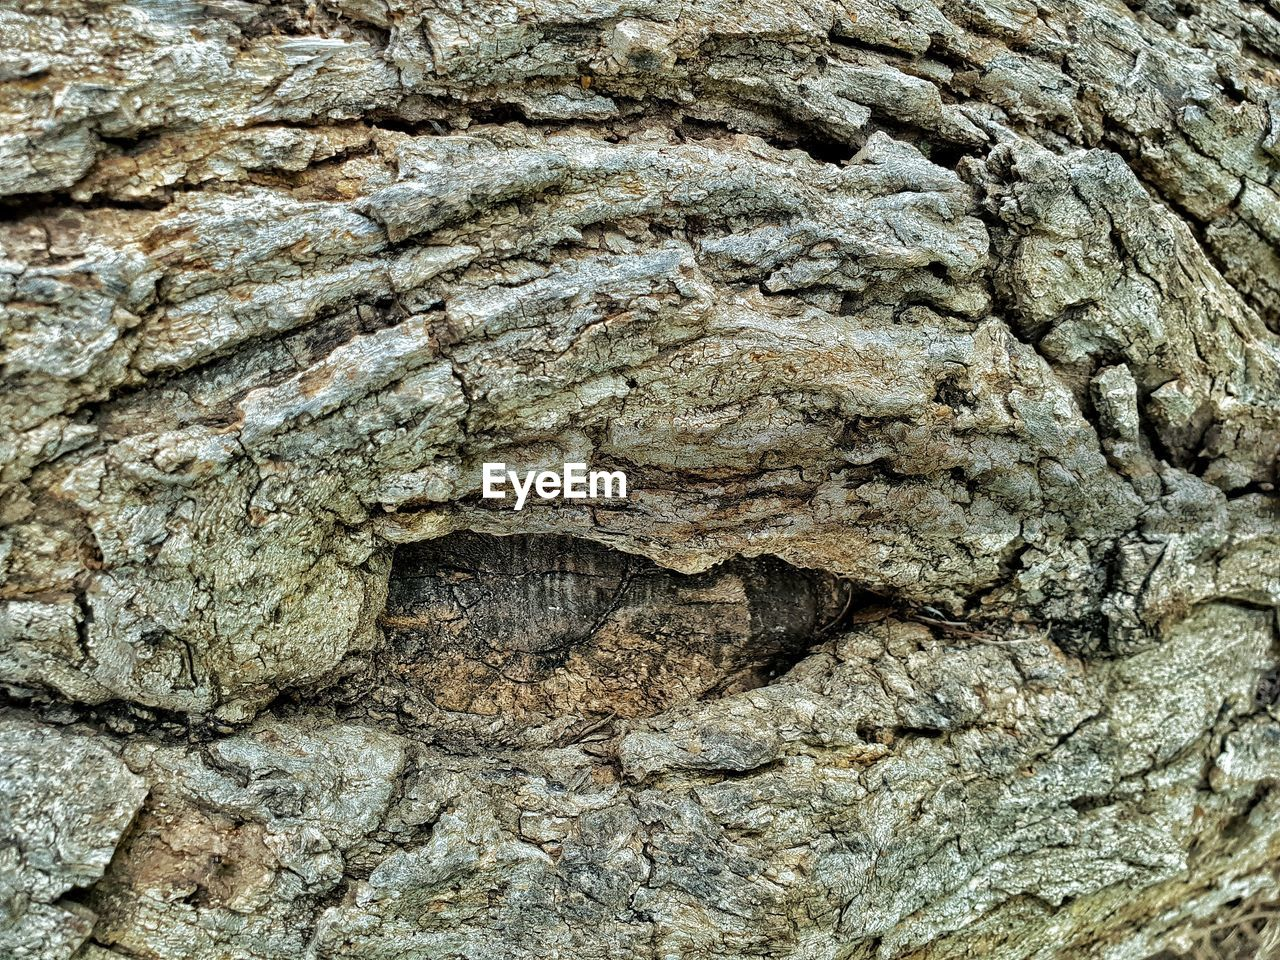 textured, rough, backgrounds, full frame, close-up, tree trunk, no people, trunk, tree, day, nature, plant bark, pattern, natural pattern, plant, outdoors, brown, bark, geology, low angle view